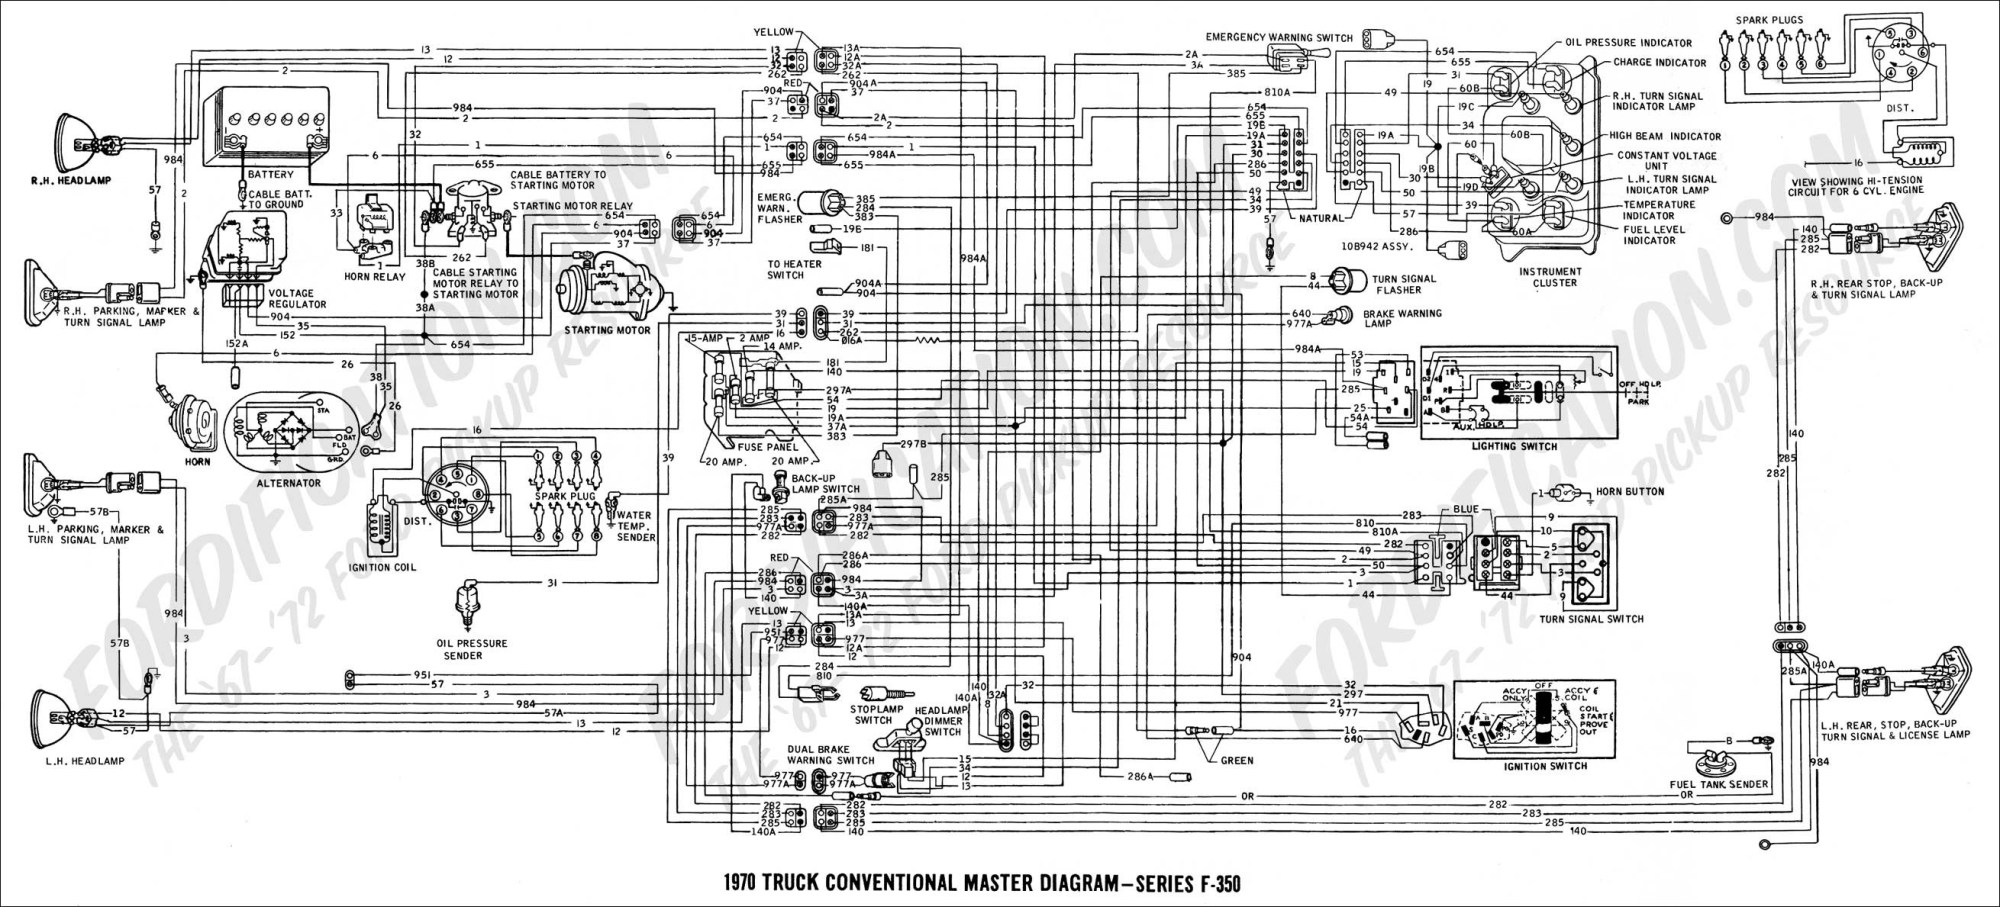 hight resolution of 2004 ford e250 fuse diagram wiring library 2000 ford e250 fuse panel diagram 2004 ford e250 fuse diagram